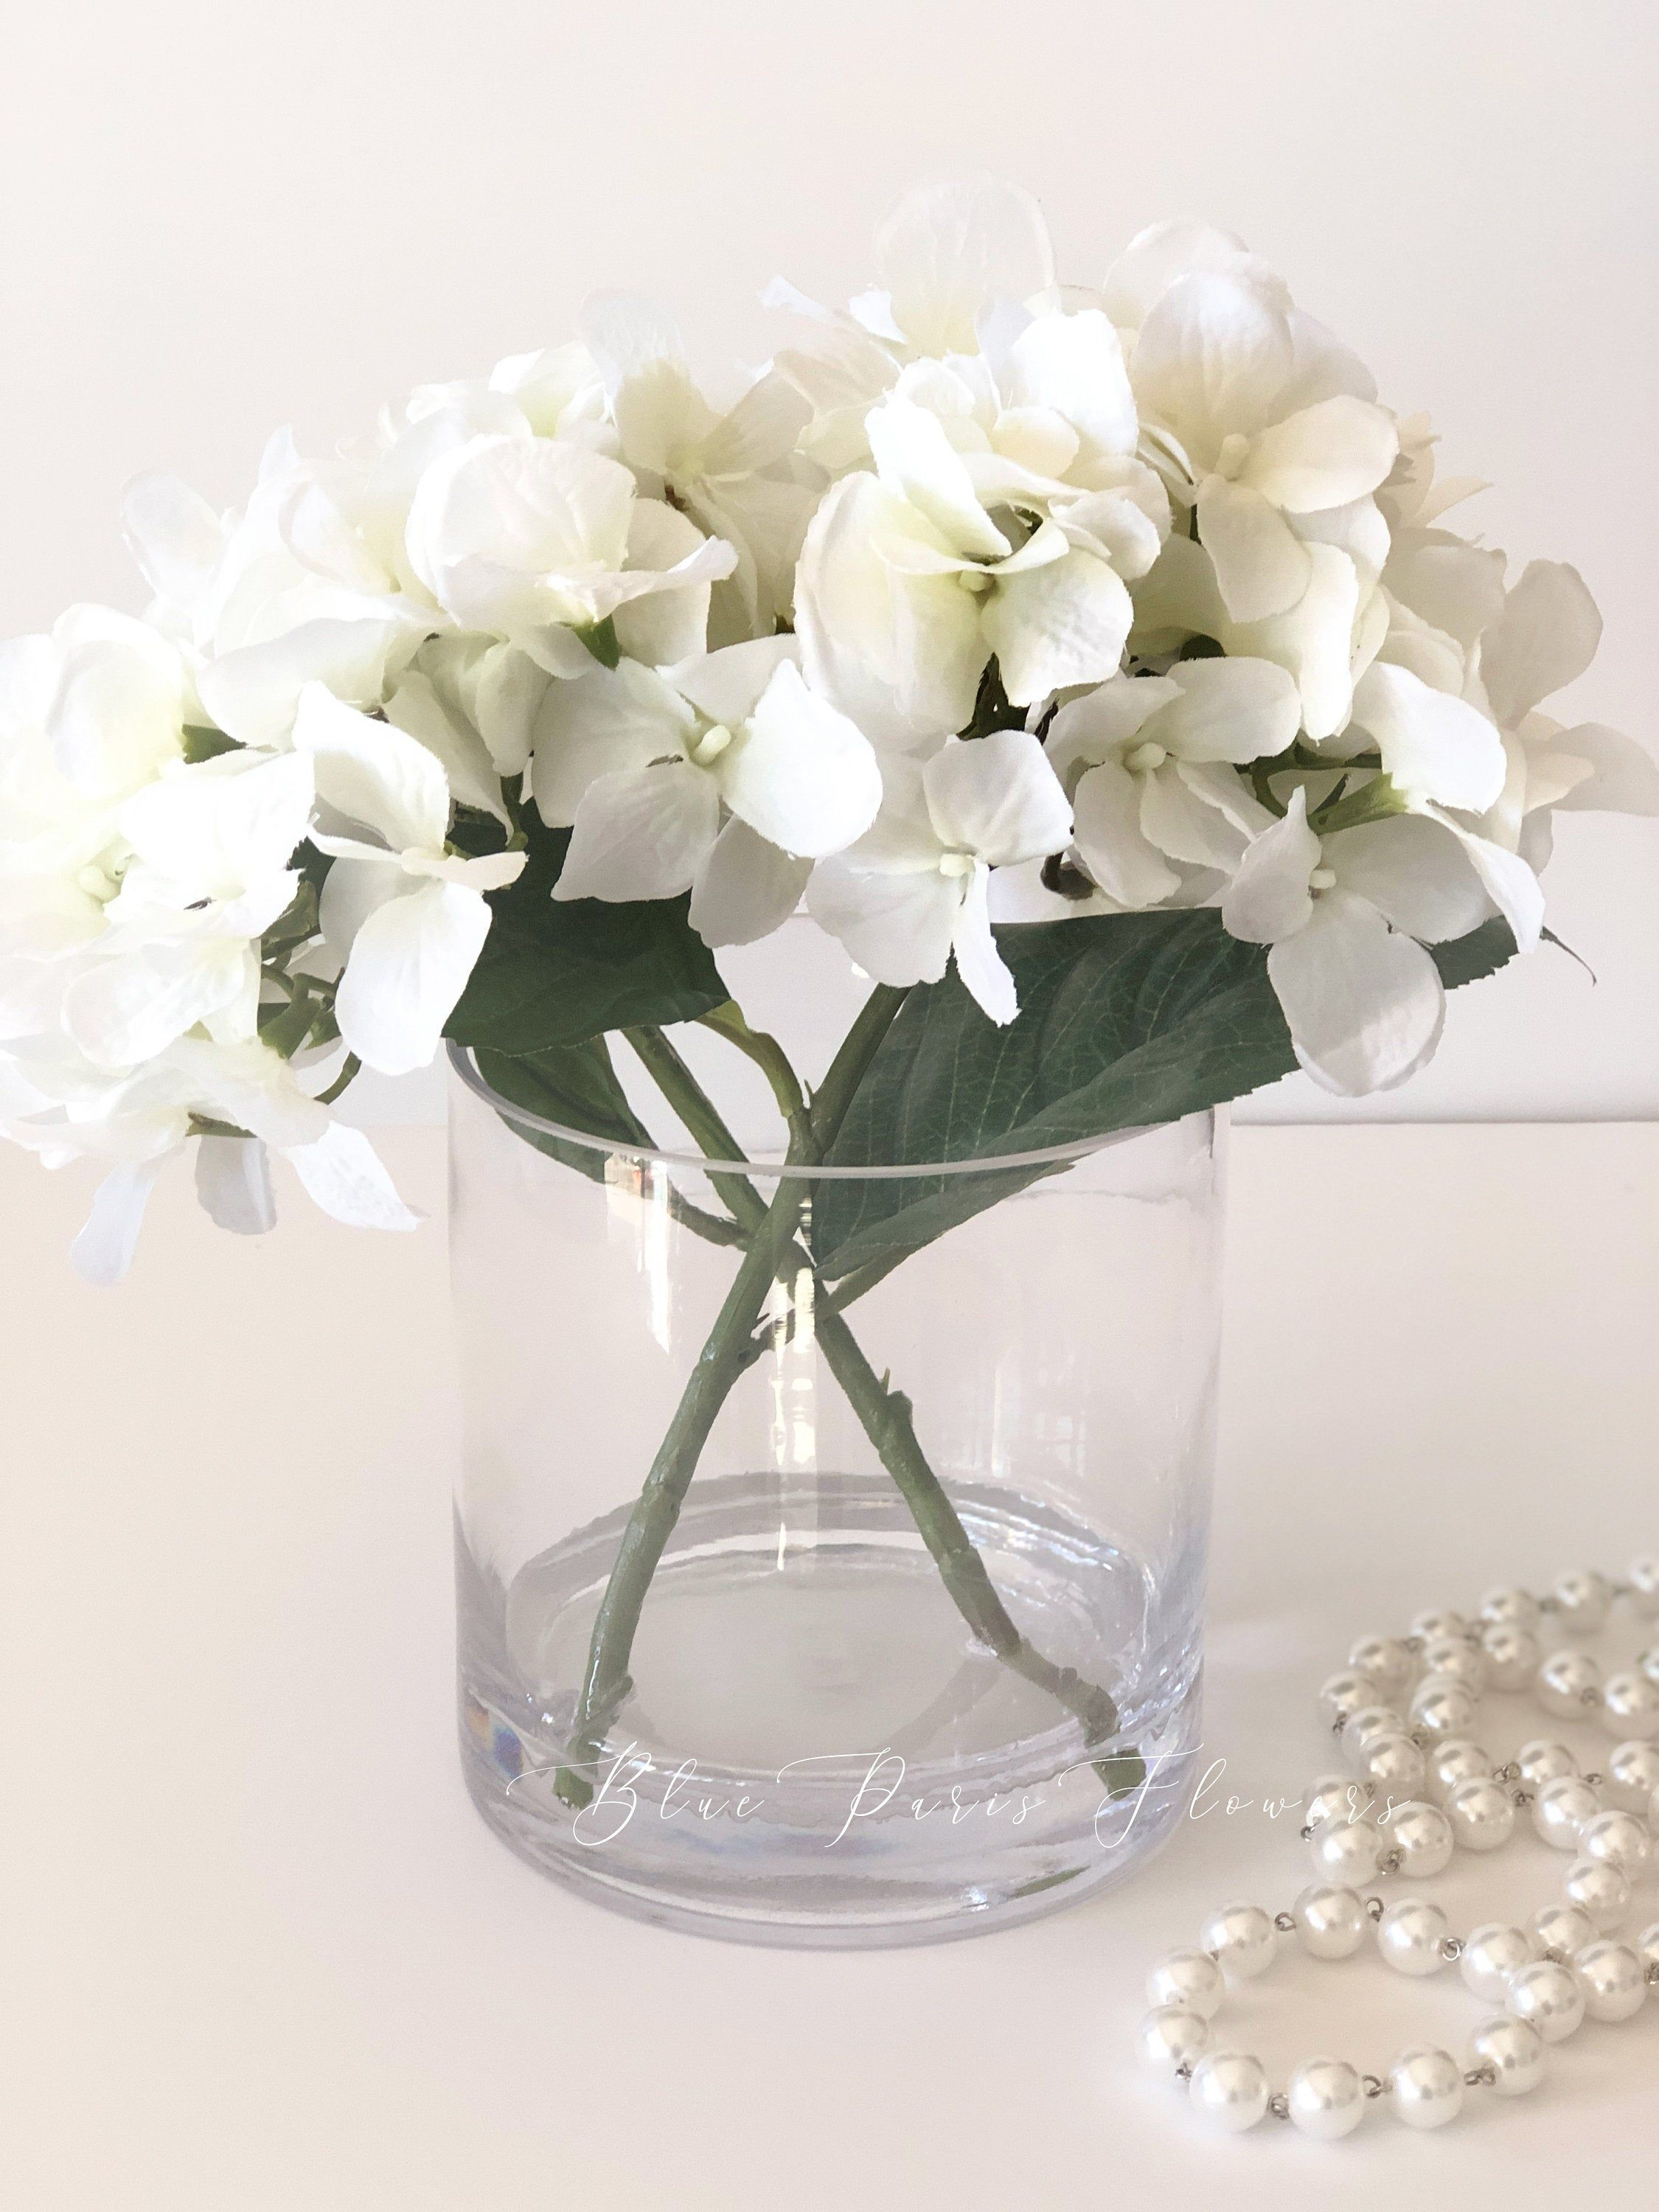 Faux Hydrangea Flower In Vase Etsy In 2020 Faux Hydrangea Paris Flowers Clear Glass Vases